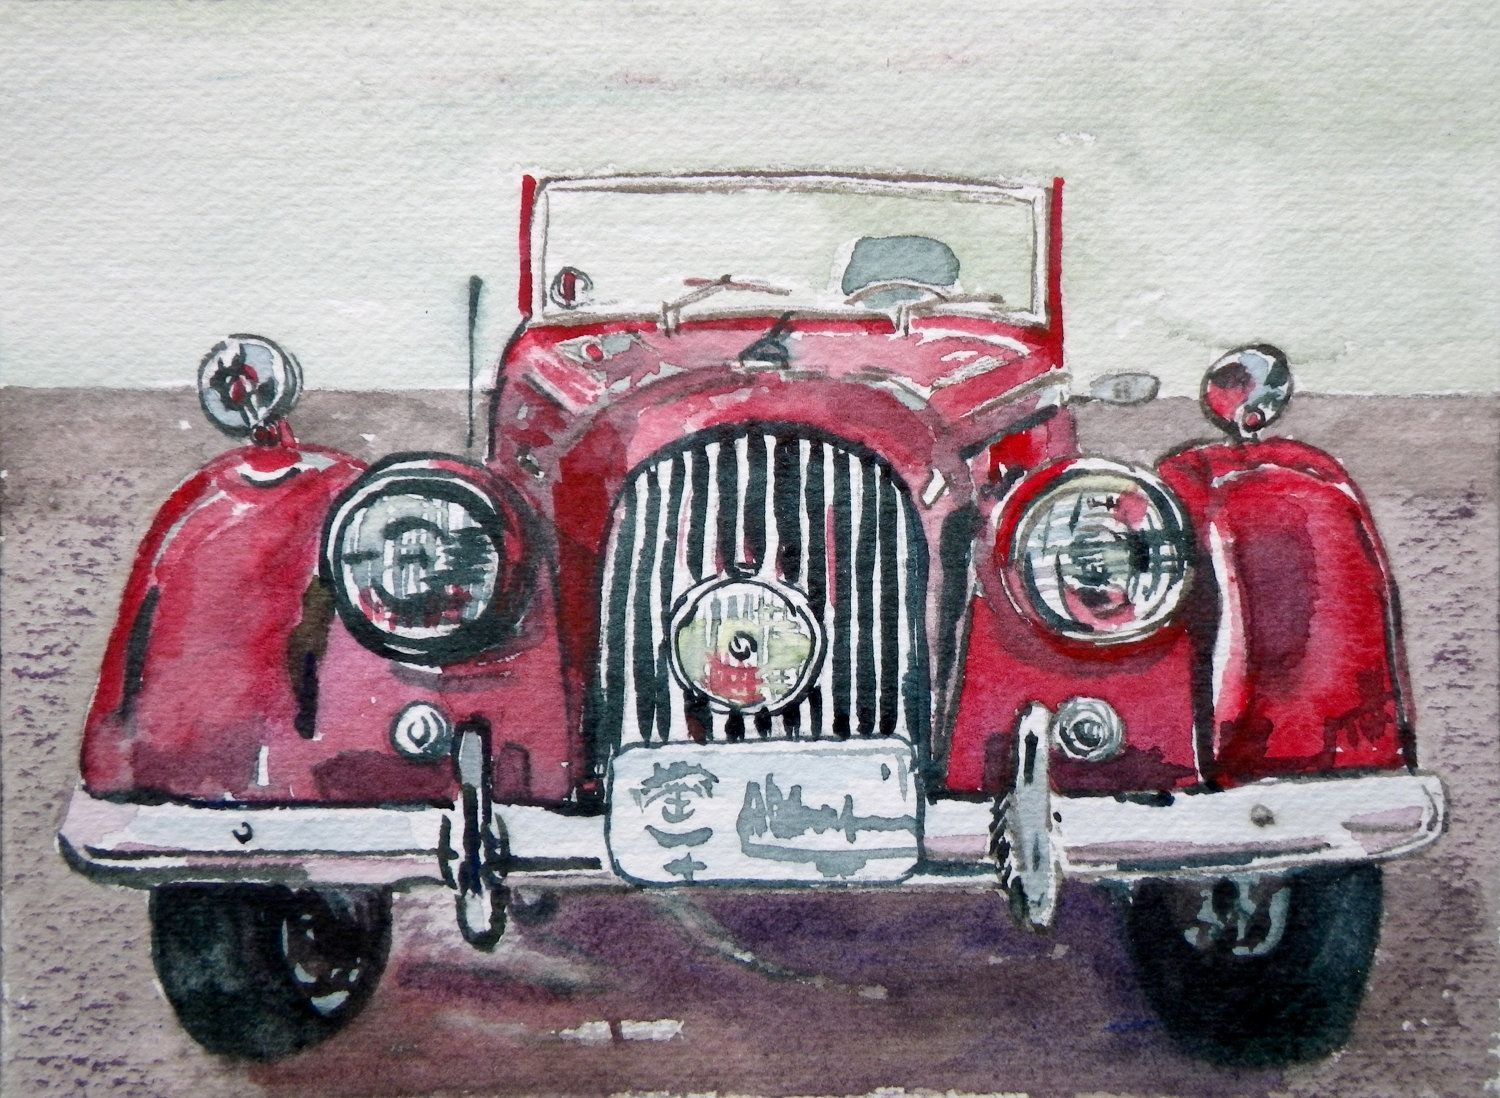 Morgan Red Clic Car Painting Affordable Original Fine Art Watercolor Greeting Card Can Be Framed Custom Paintings